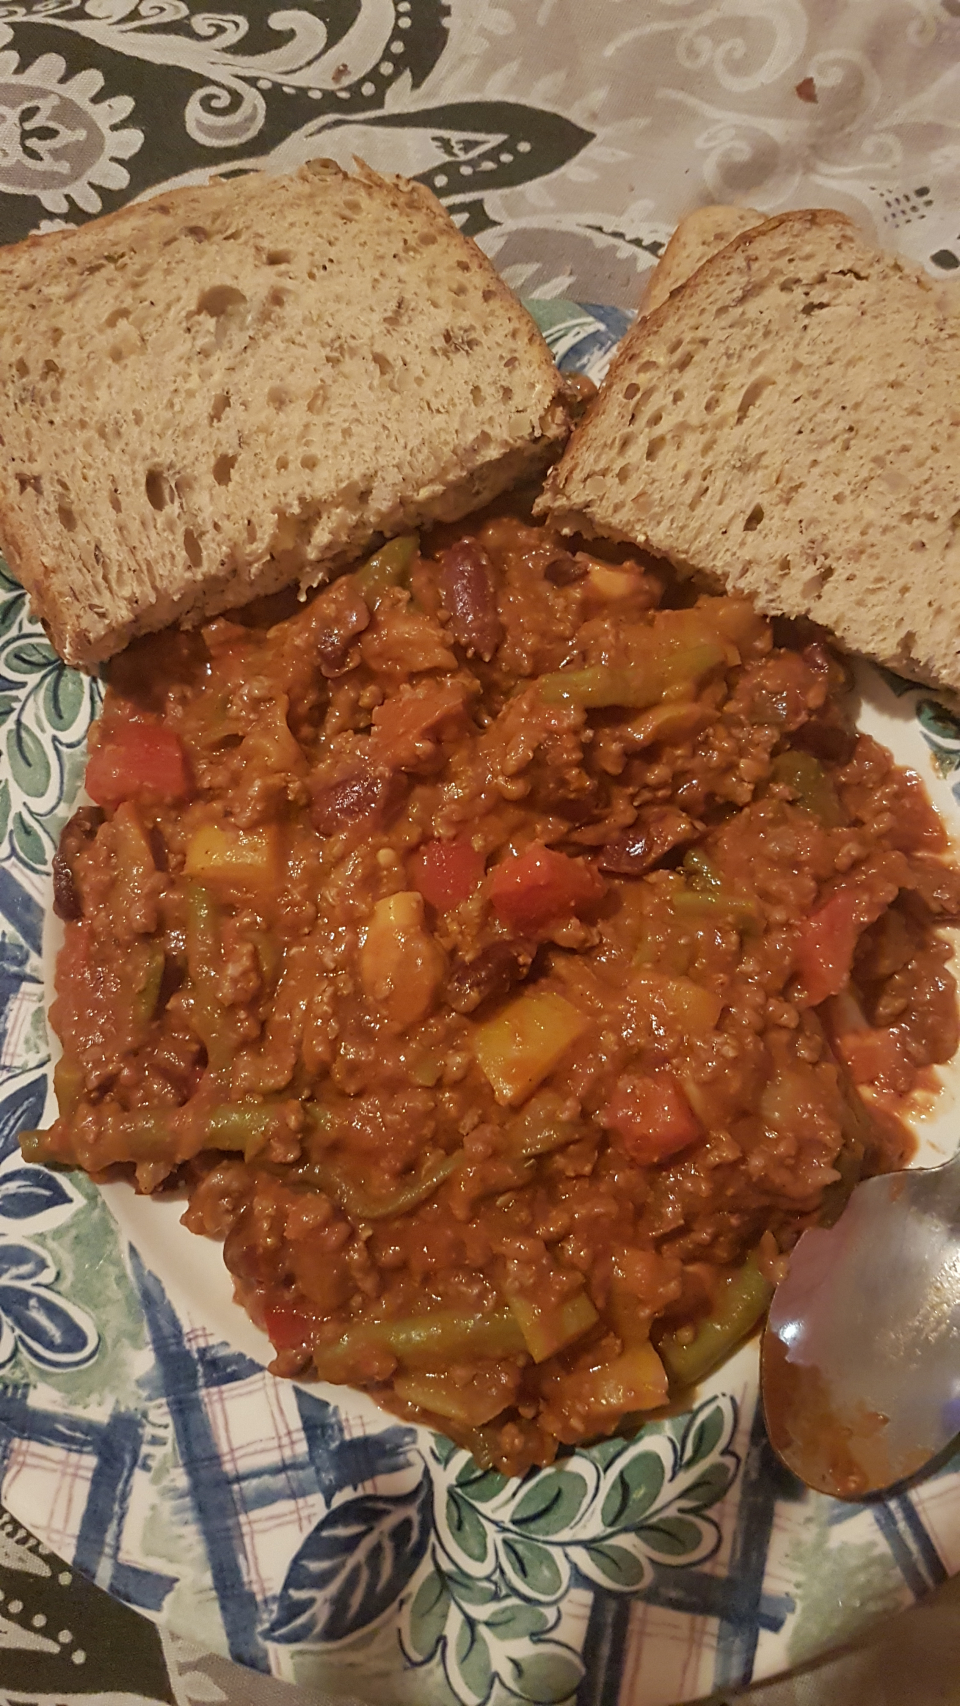 Last night's dinner mince and veg chilly